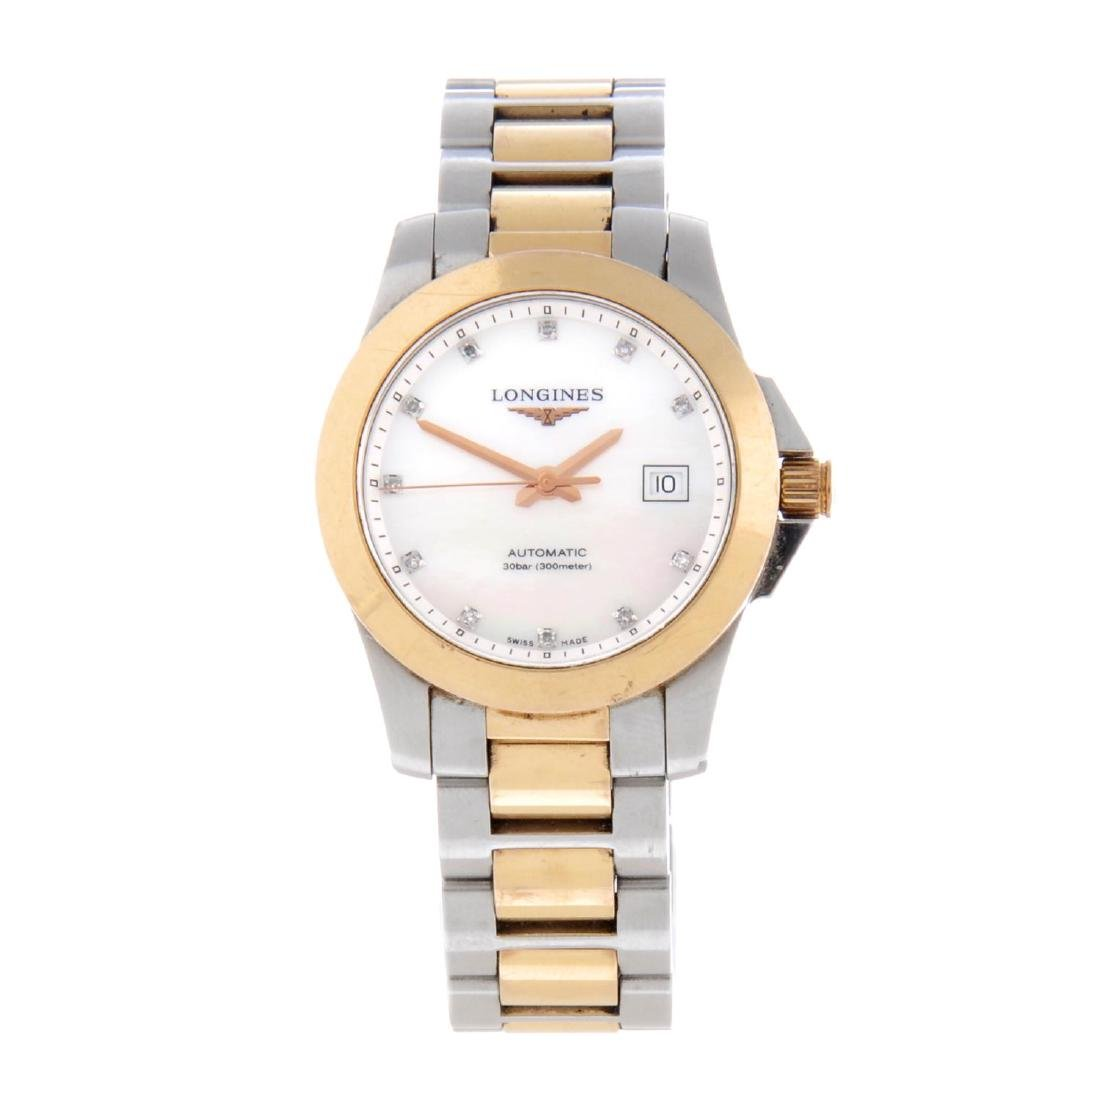 LONGINES - a lady's Conquest bracelet watch. Stainless